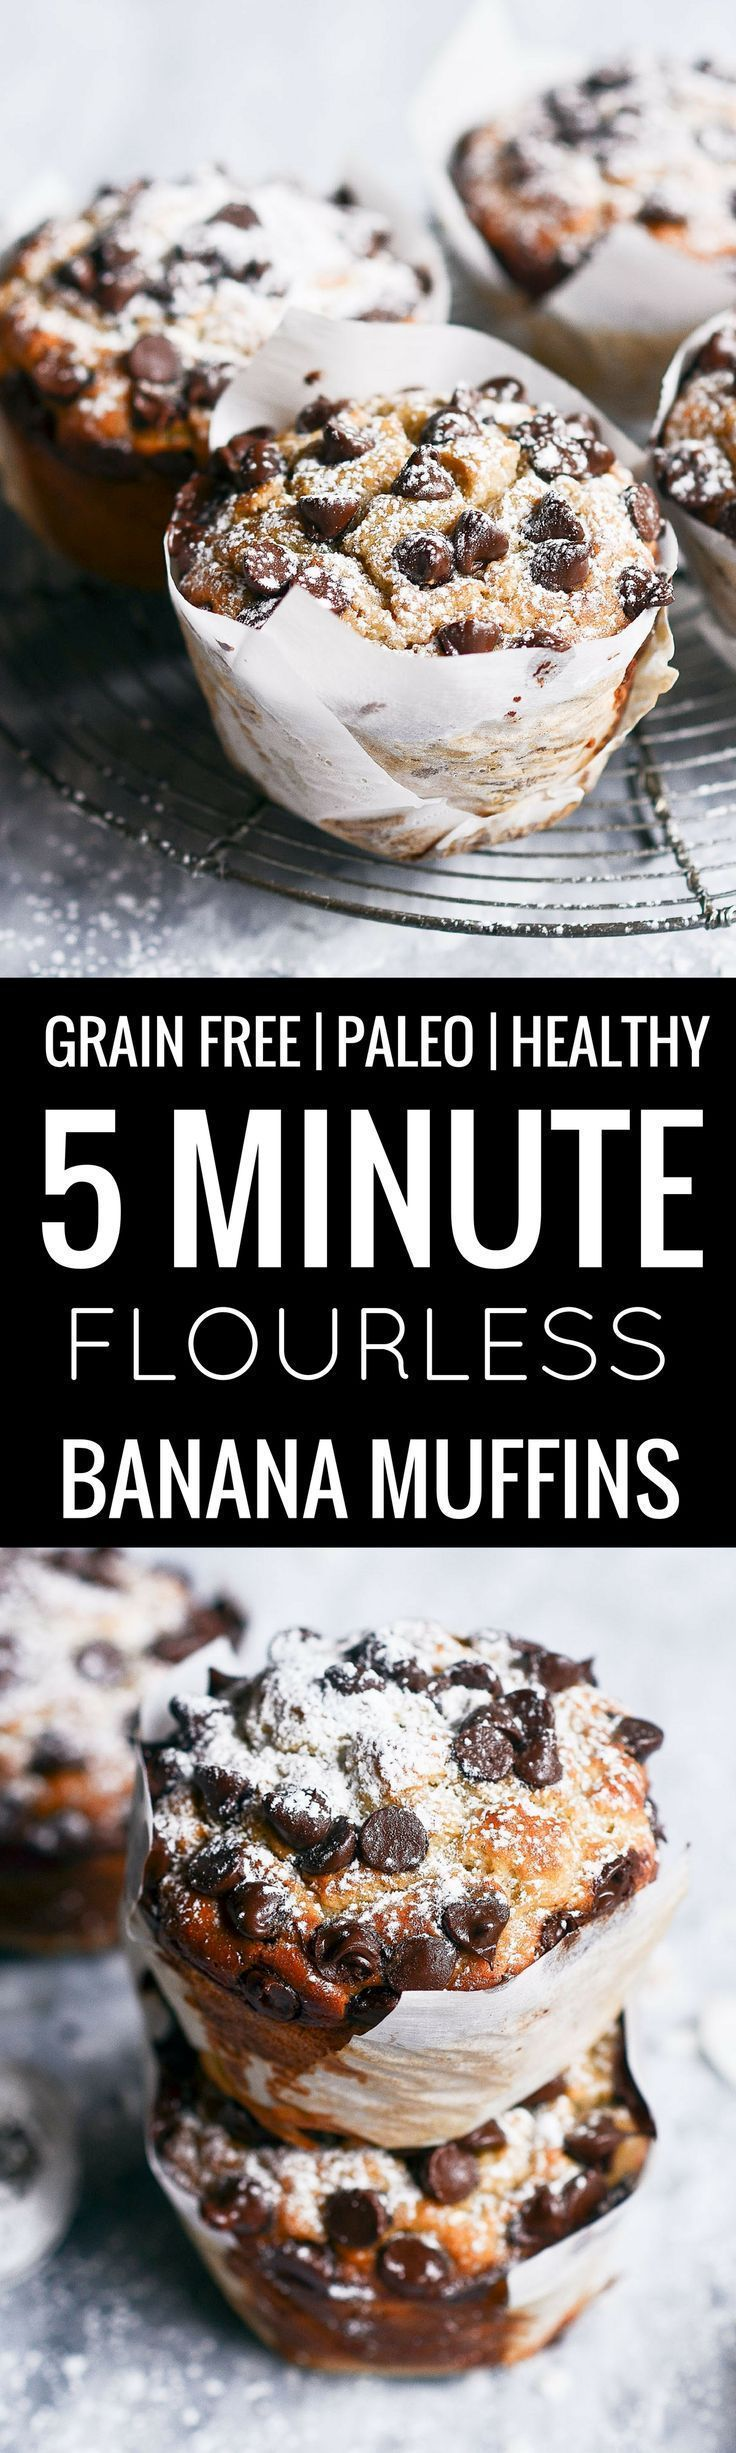 paleo banana muffins made in 5 minutes! Incredibly soft and fluffy muffins that are healthy and gluten free.